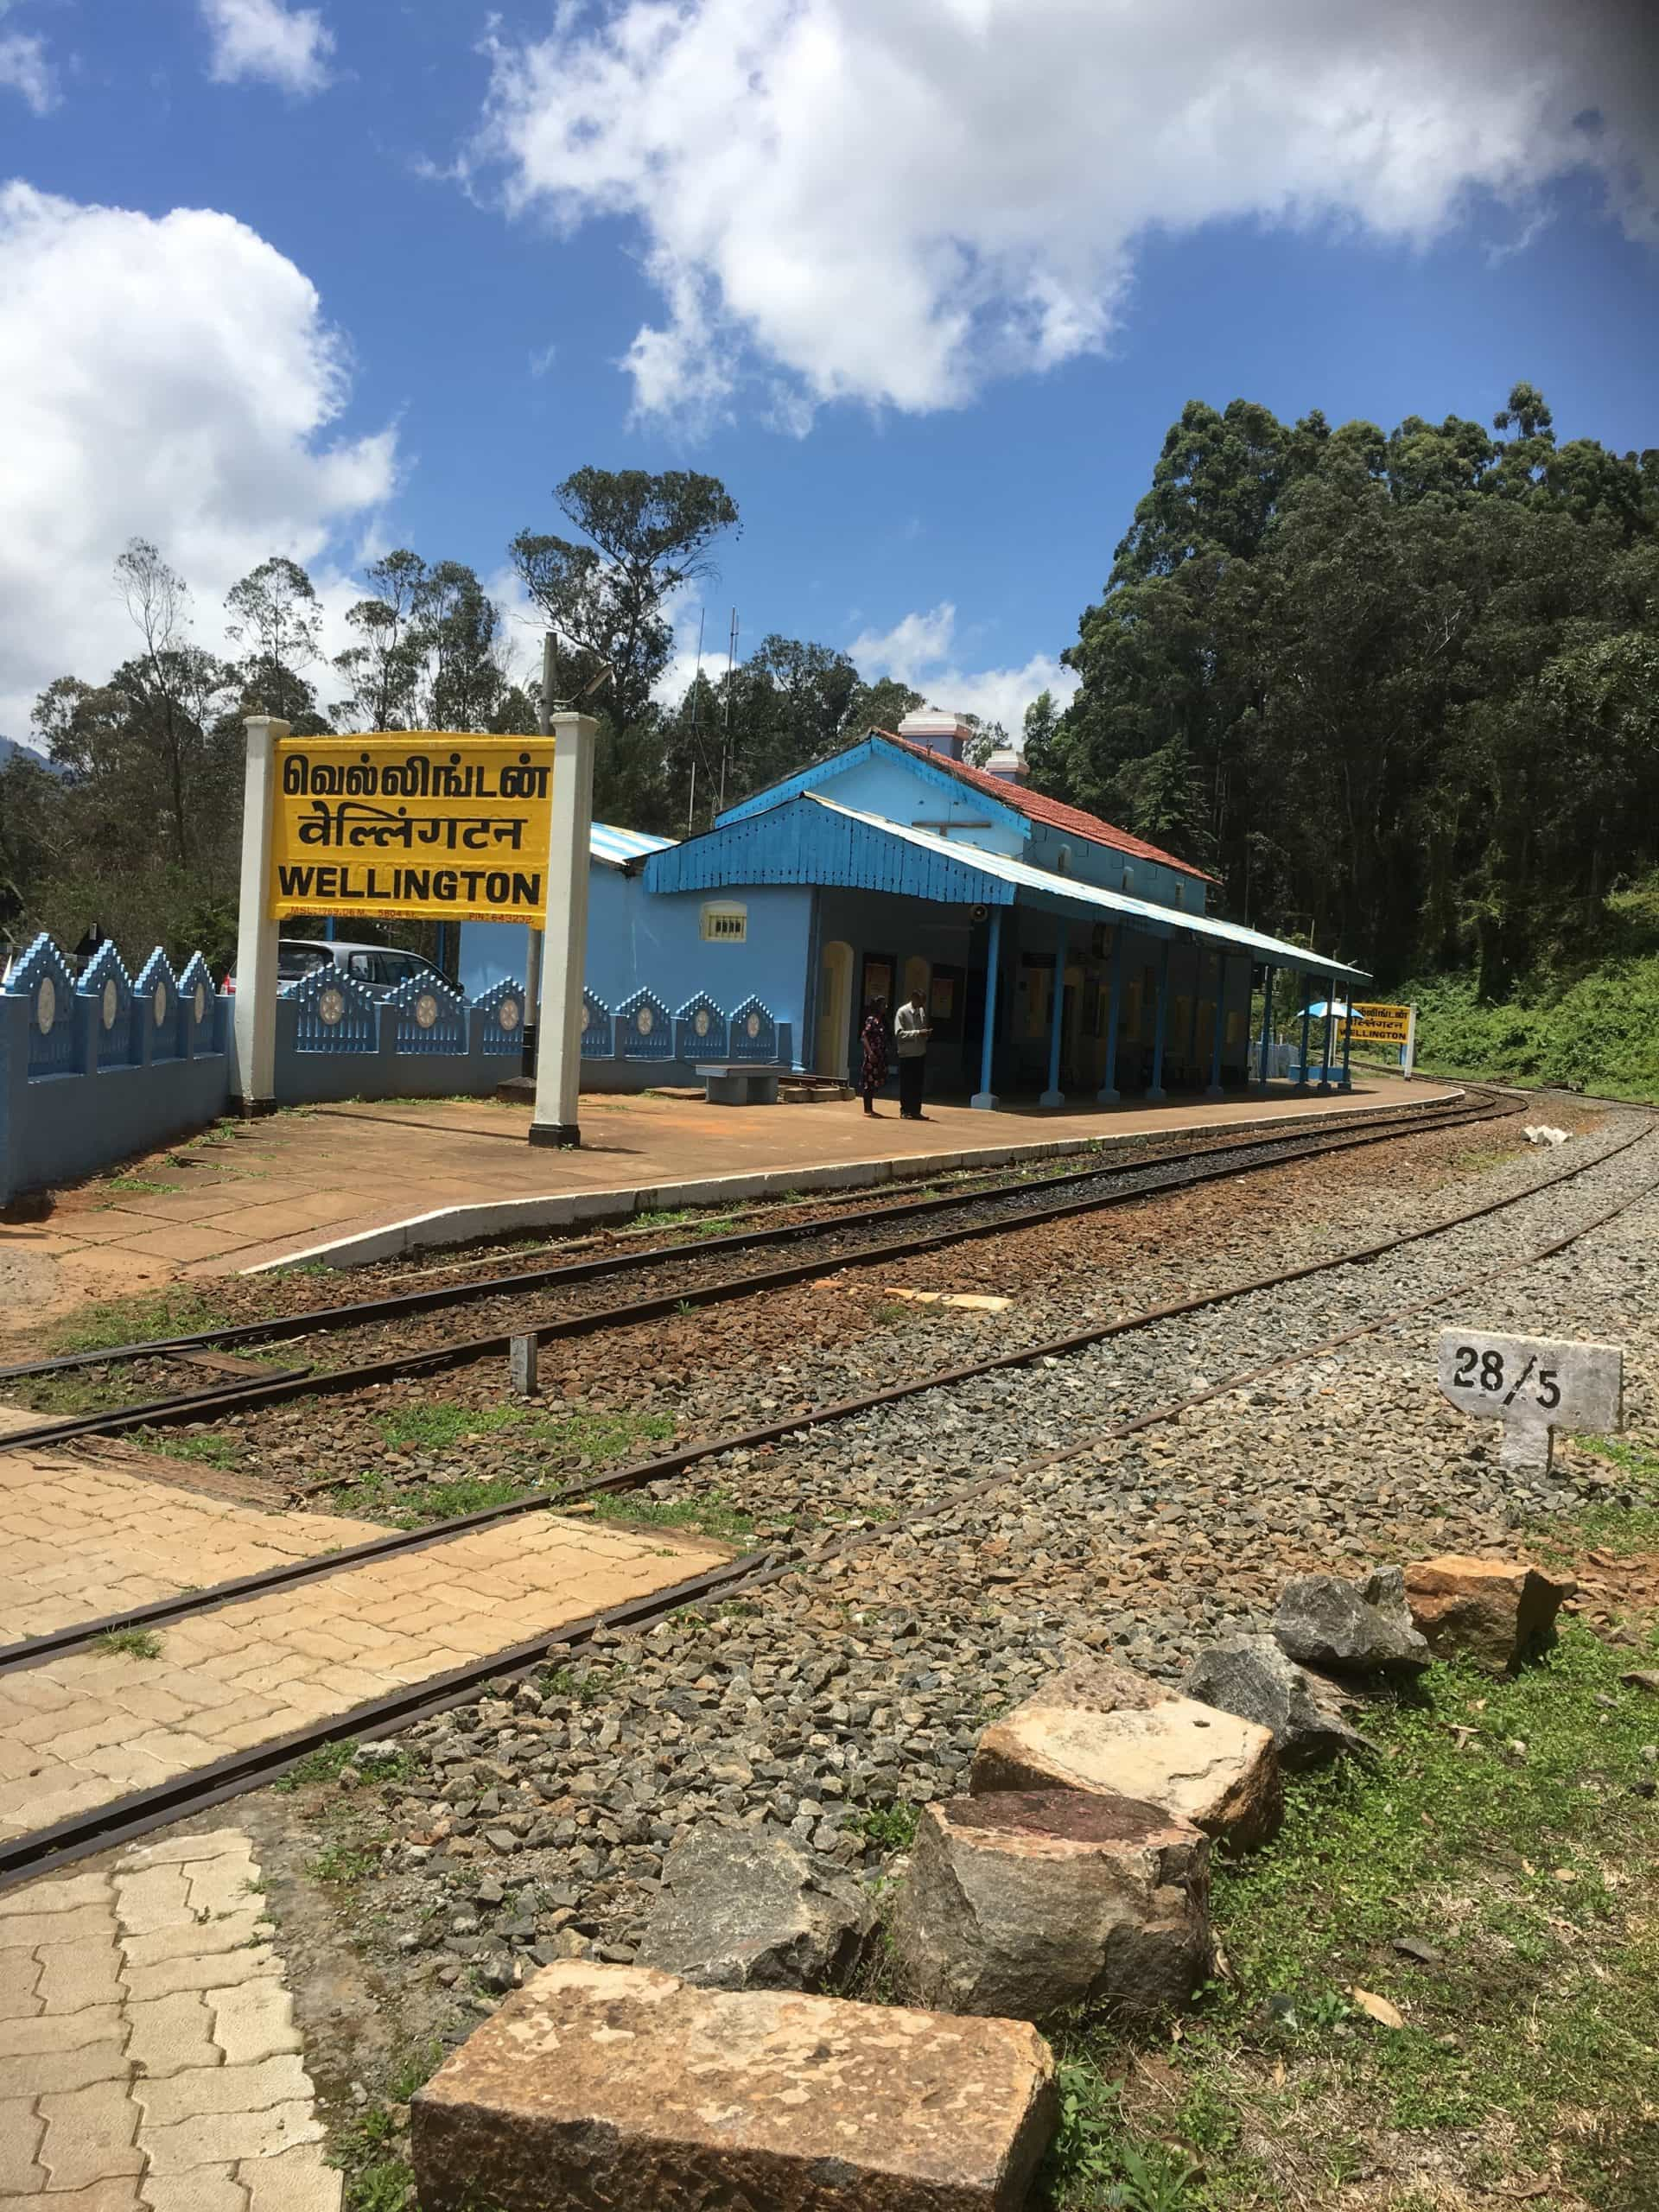 Wellington Station Tamil Nadu, part of the World Heritage Nilgiri Mountain Railway